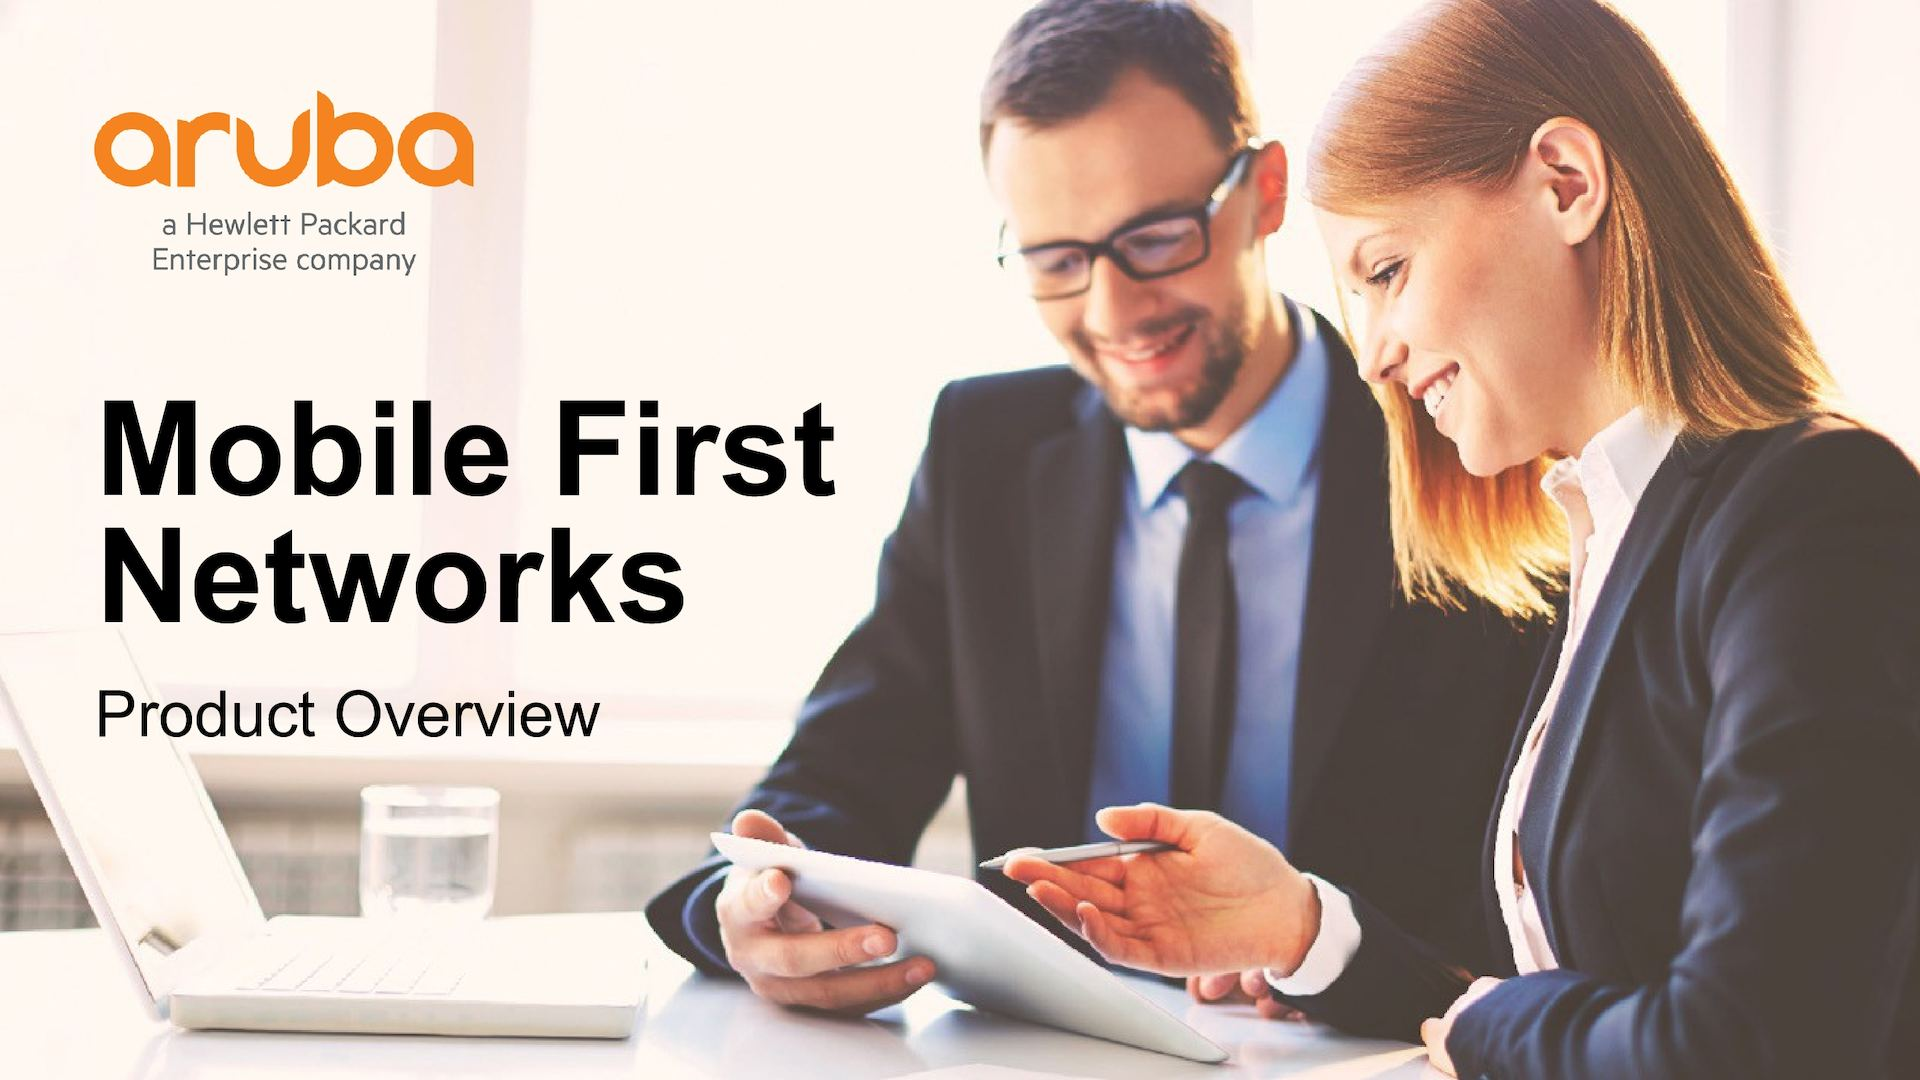 Calaméo - Hpe Aruba Mobile First Products